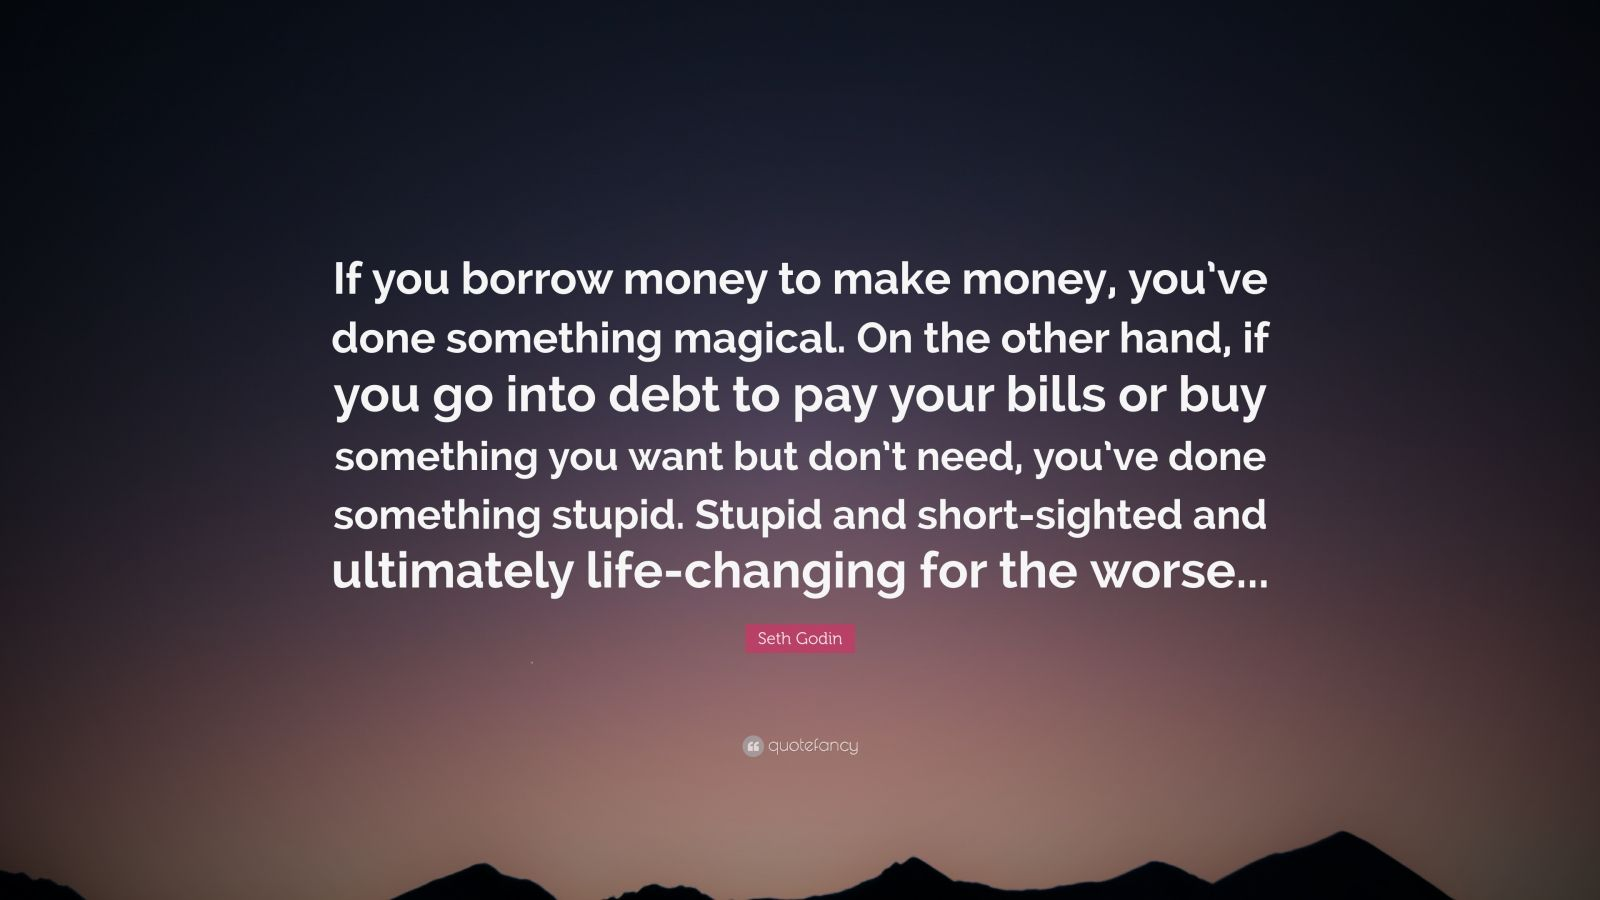 """Seth Godin Quote: """"If you borrow money to make money, you've done something magical. On the other hand, if you go into debt to pay your bills or buy something you want but don't need, you've done something stupid. Stupid and short-sighted and ultimately life-changing for the worse..."""""""